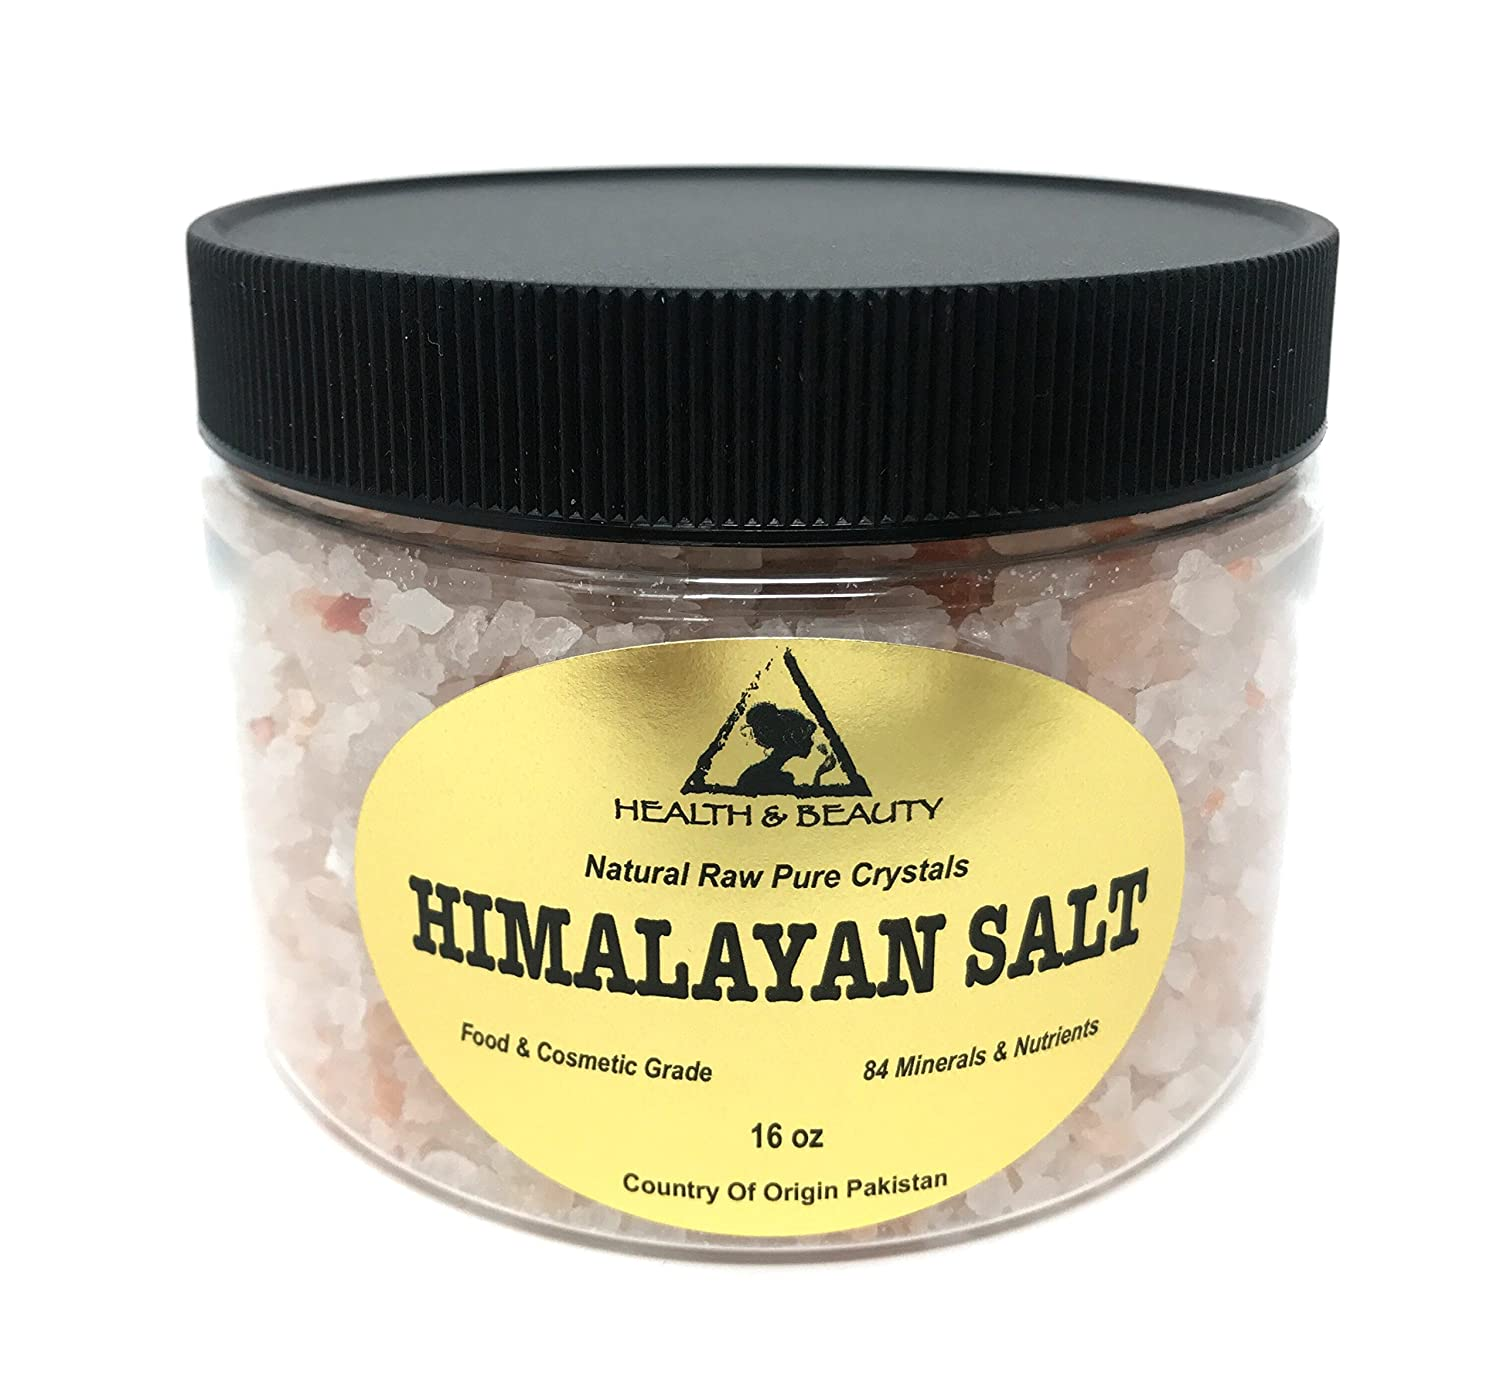 Himalayan Salt Organic Pink Crystals Coarse/Medium Grain Unrefined Food Grade Sea Salt Premium Prime 100% Pure 16 oz, 1 LB, 454 g H&B OILS CENTER Co.